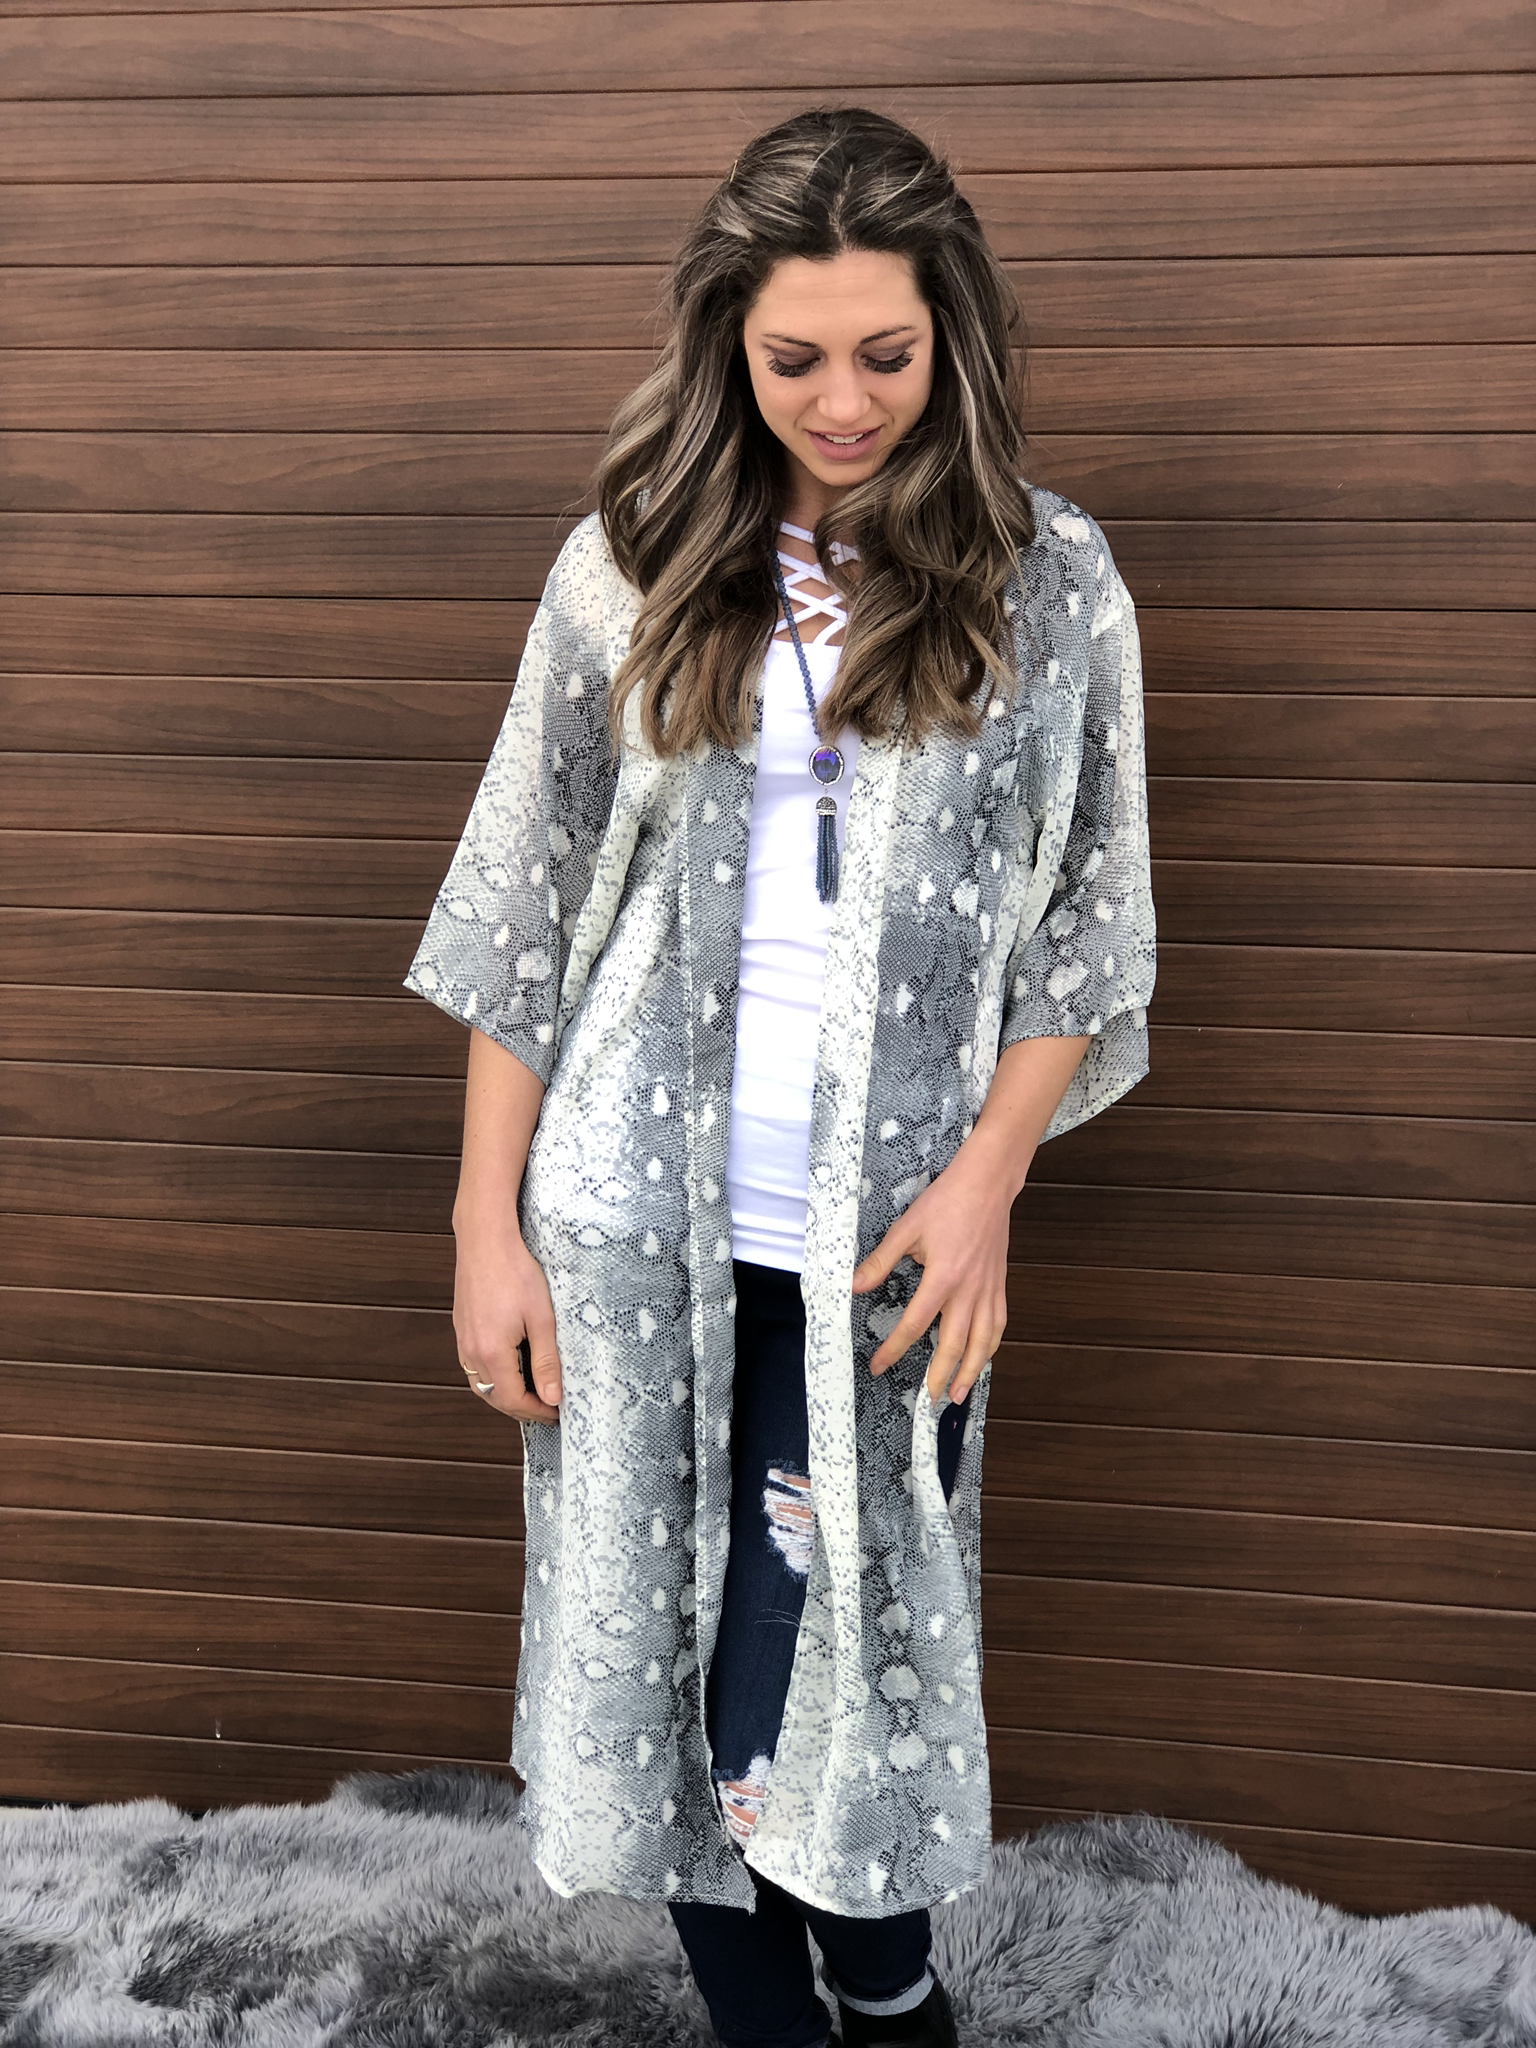 The Snakeskin Duster - Grey/Blue 81612